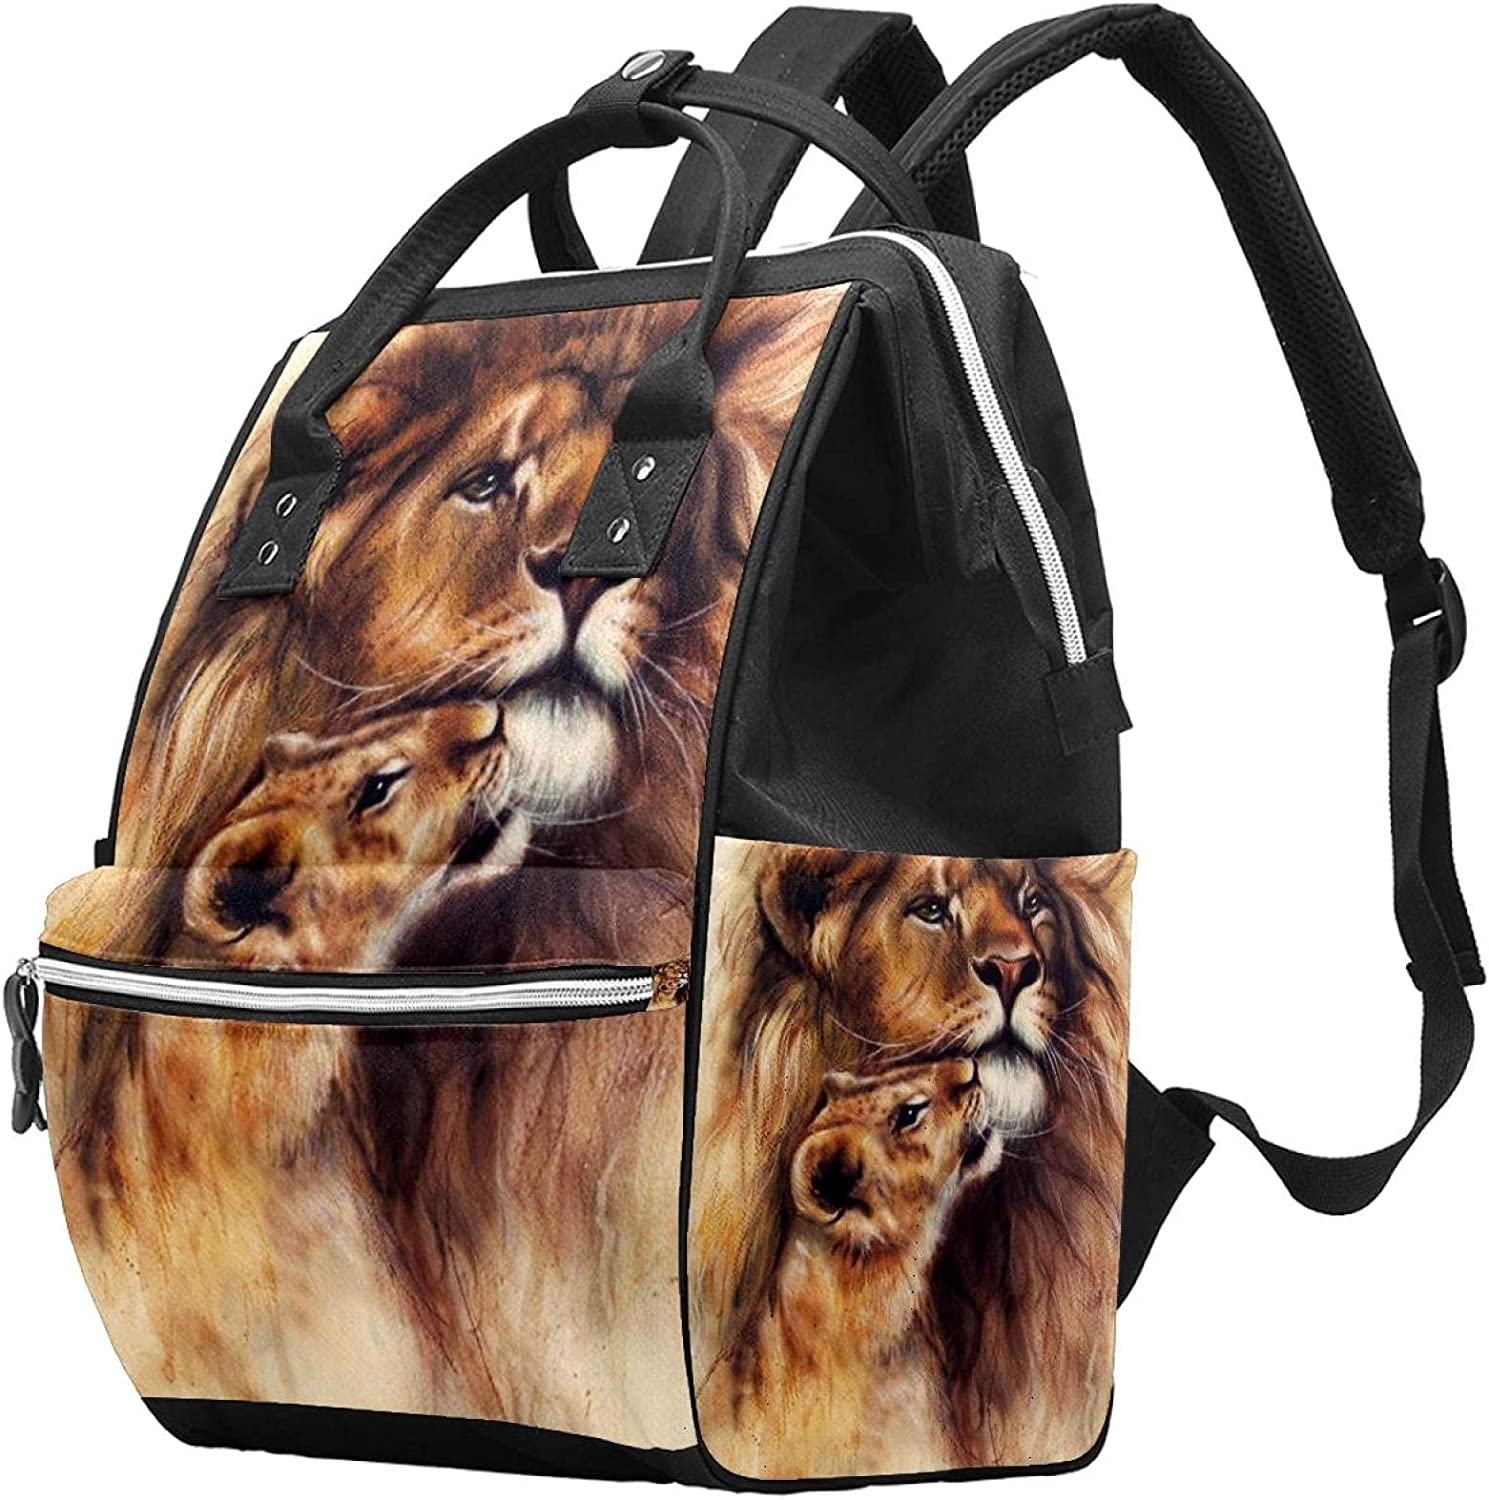 Backpacks Diaper Bag Laptop Notebook At the price of surprise Dayp Hiking Rucksack A surprise price is realized Travel